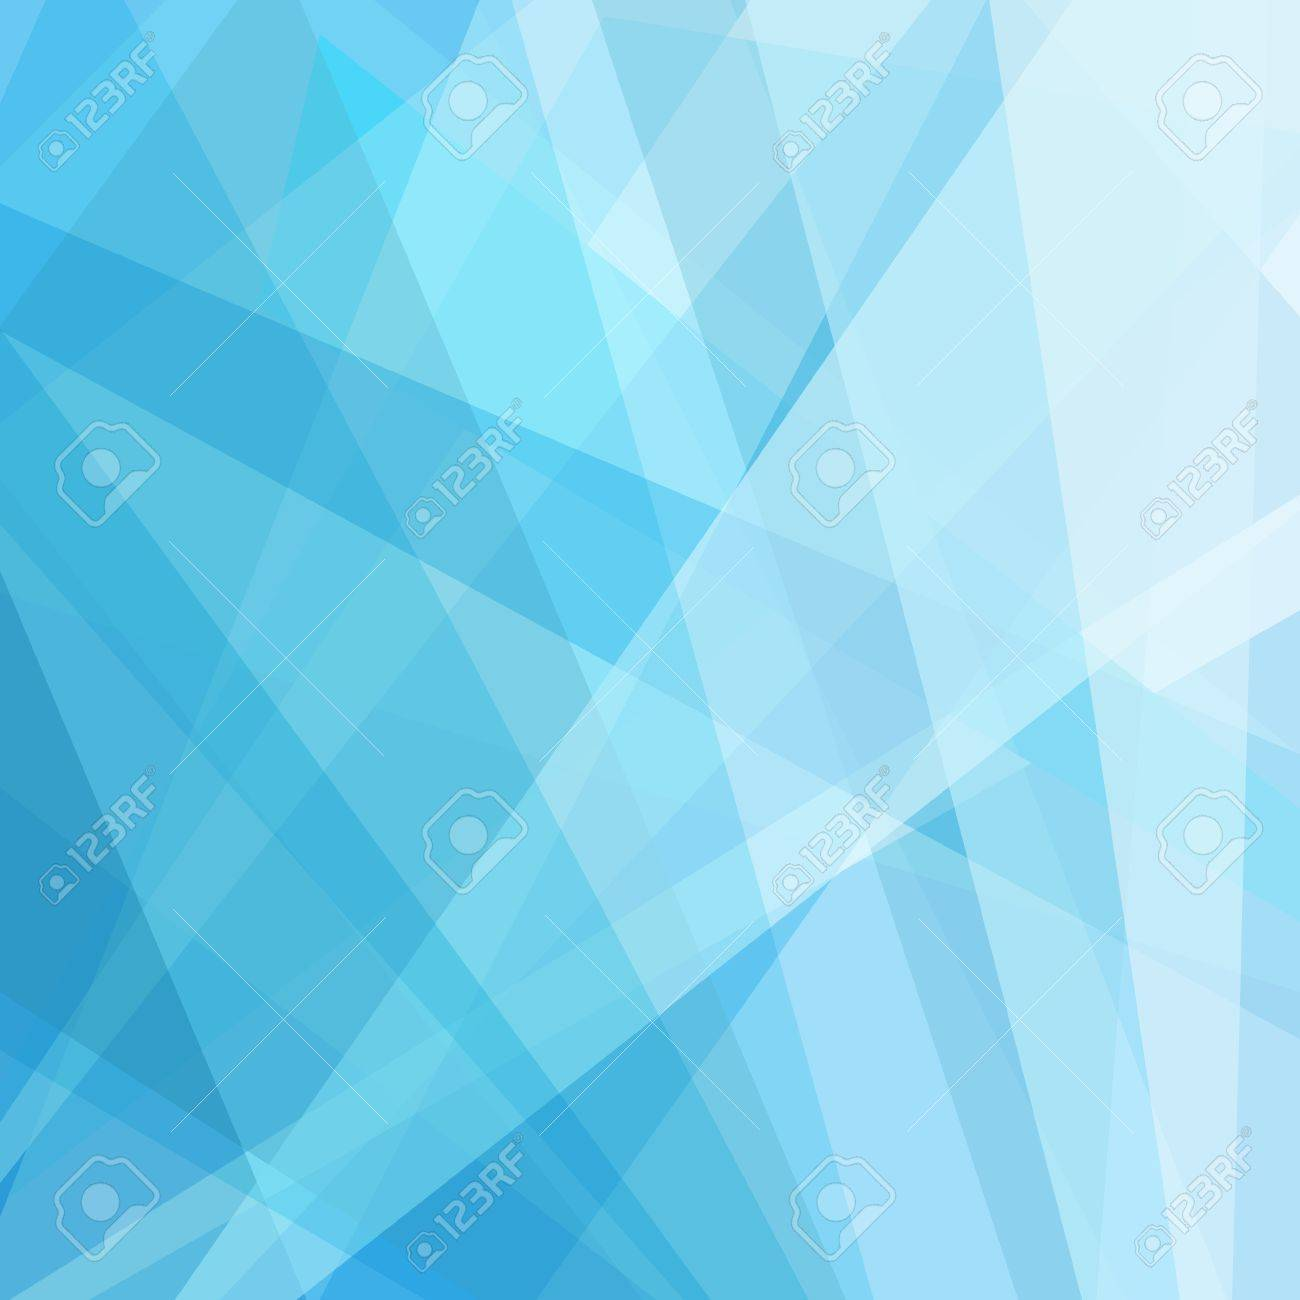 Abstract Geometric Blue And White Background Fresh Clean Lines